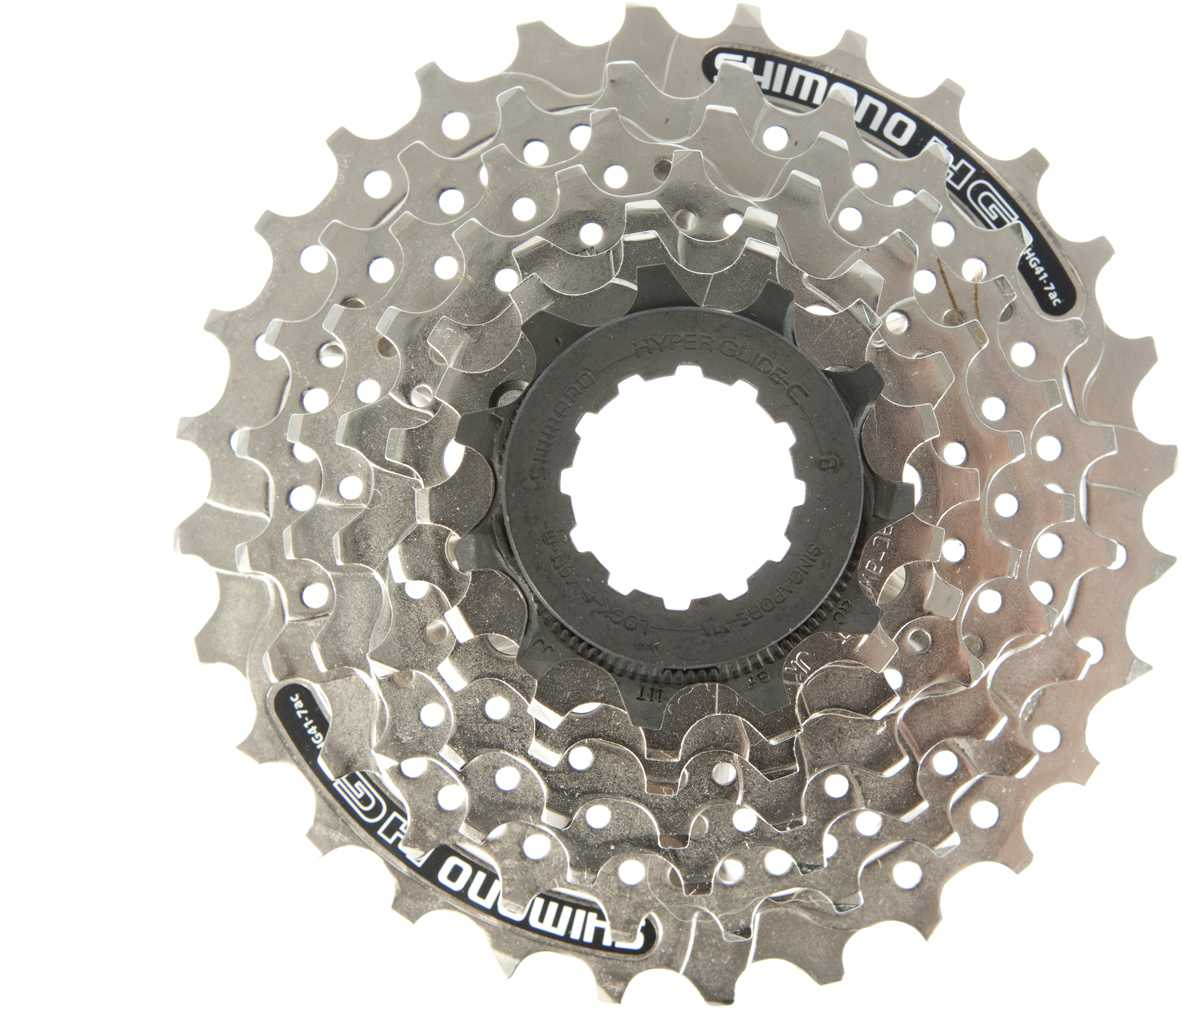 Shimano Acera HG41 7 Speed 11-28 Tooth Cassette